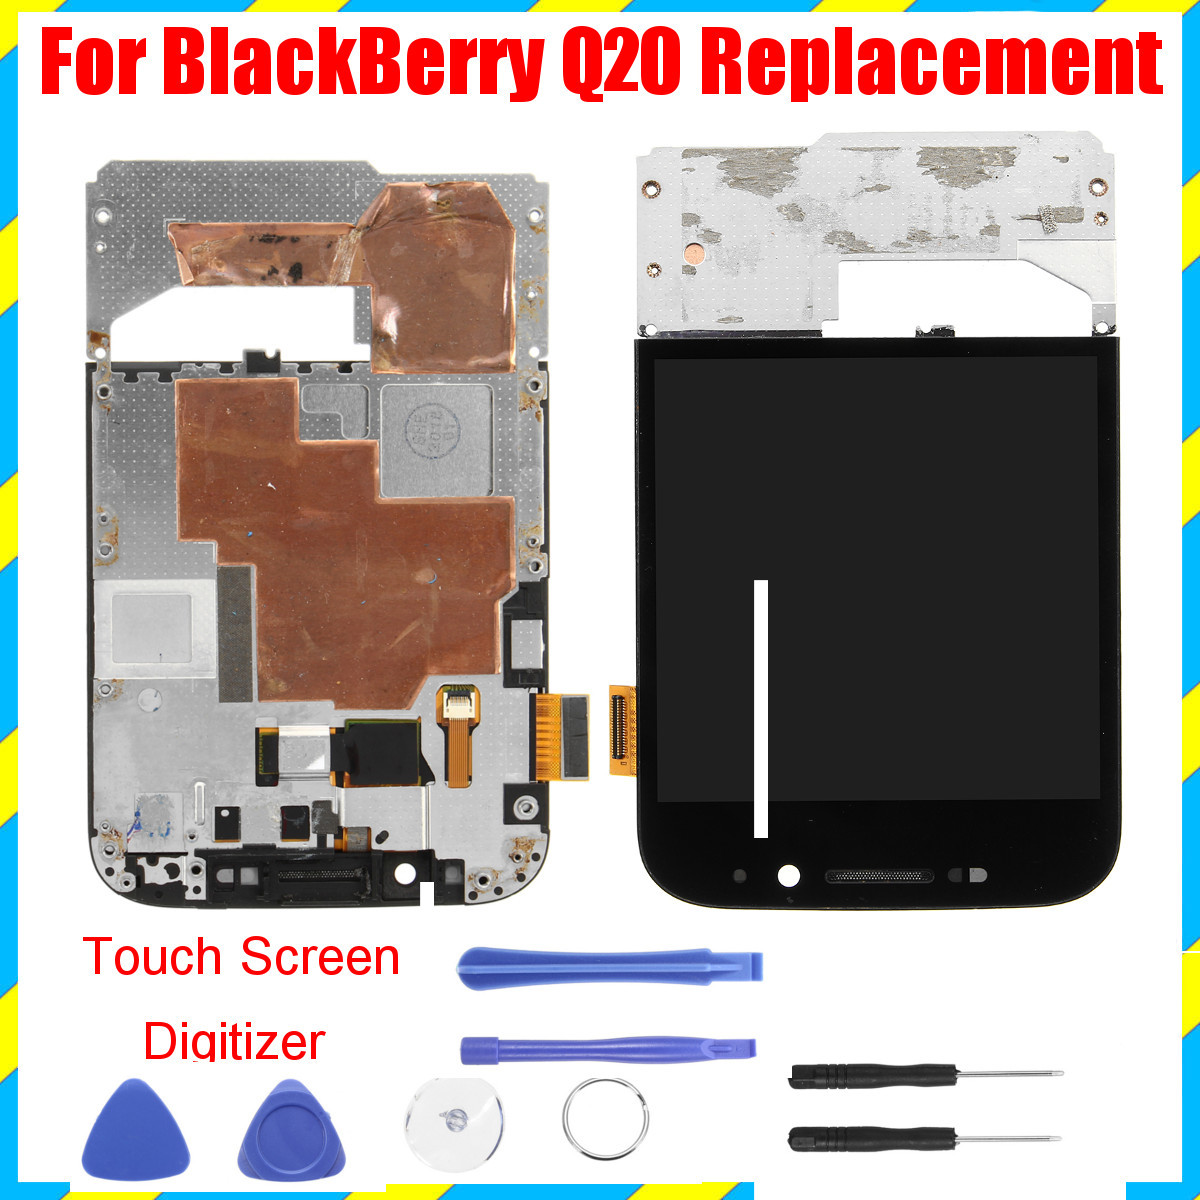 Touch Screen Digitizer LCD Display Assembly Replacement With Tools for BlackBerry Classic Q20